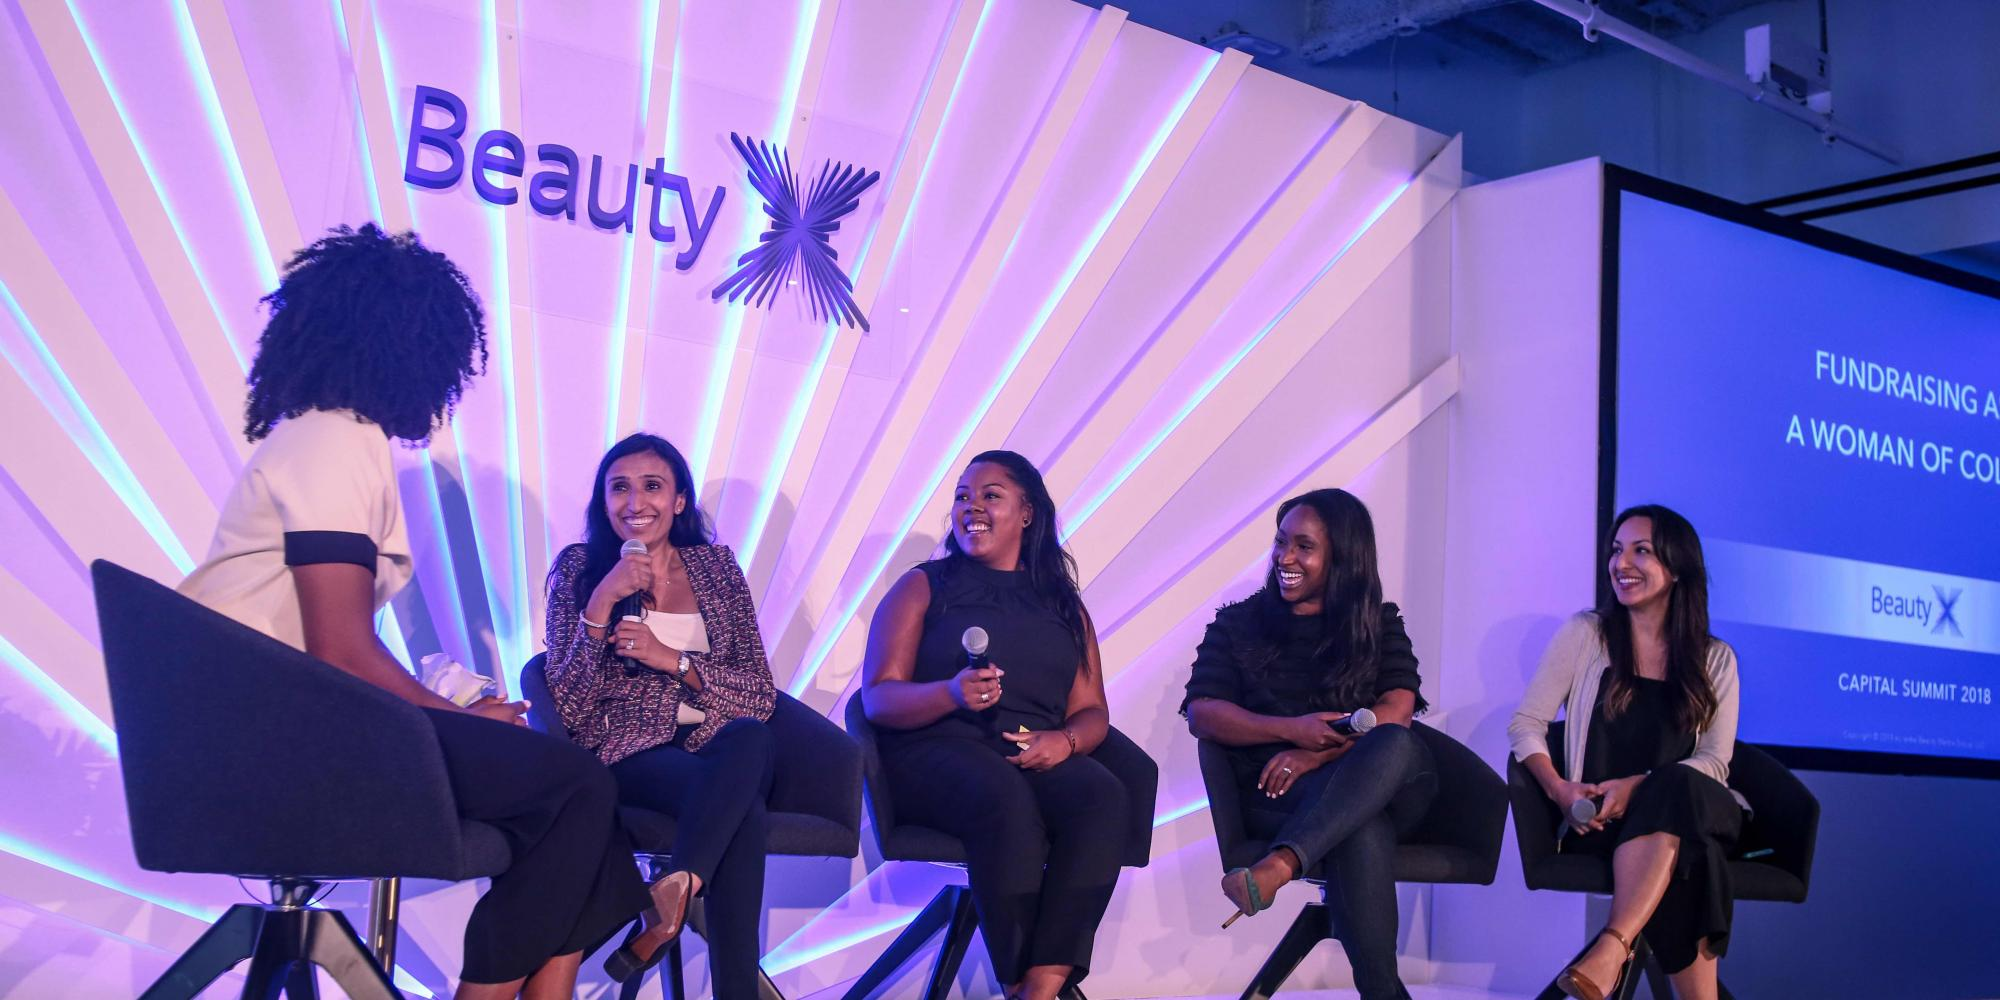 Women Of Color Offer Perspectives On Fundraising In The Beauty Industry At BeautyX Capital Summit